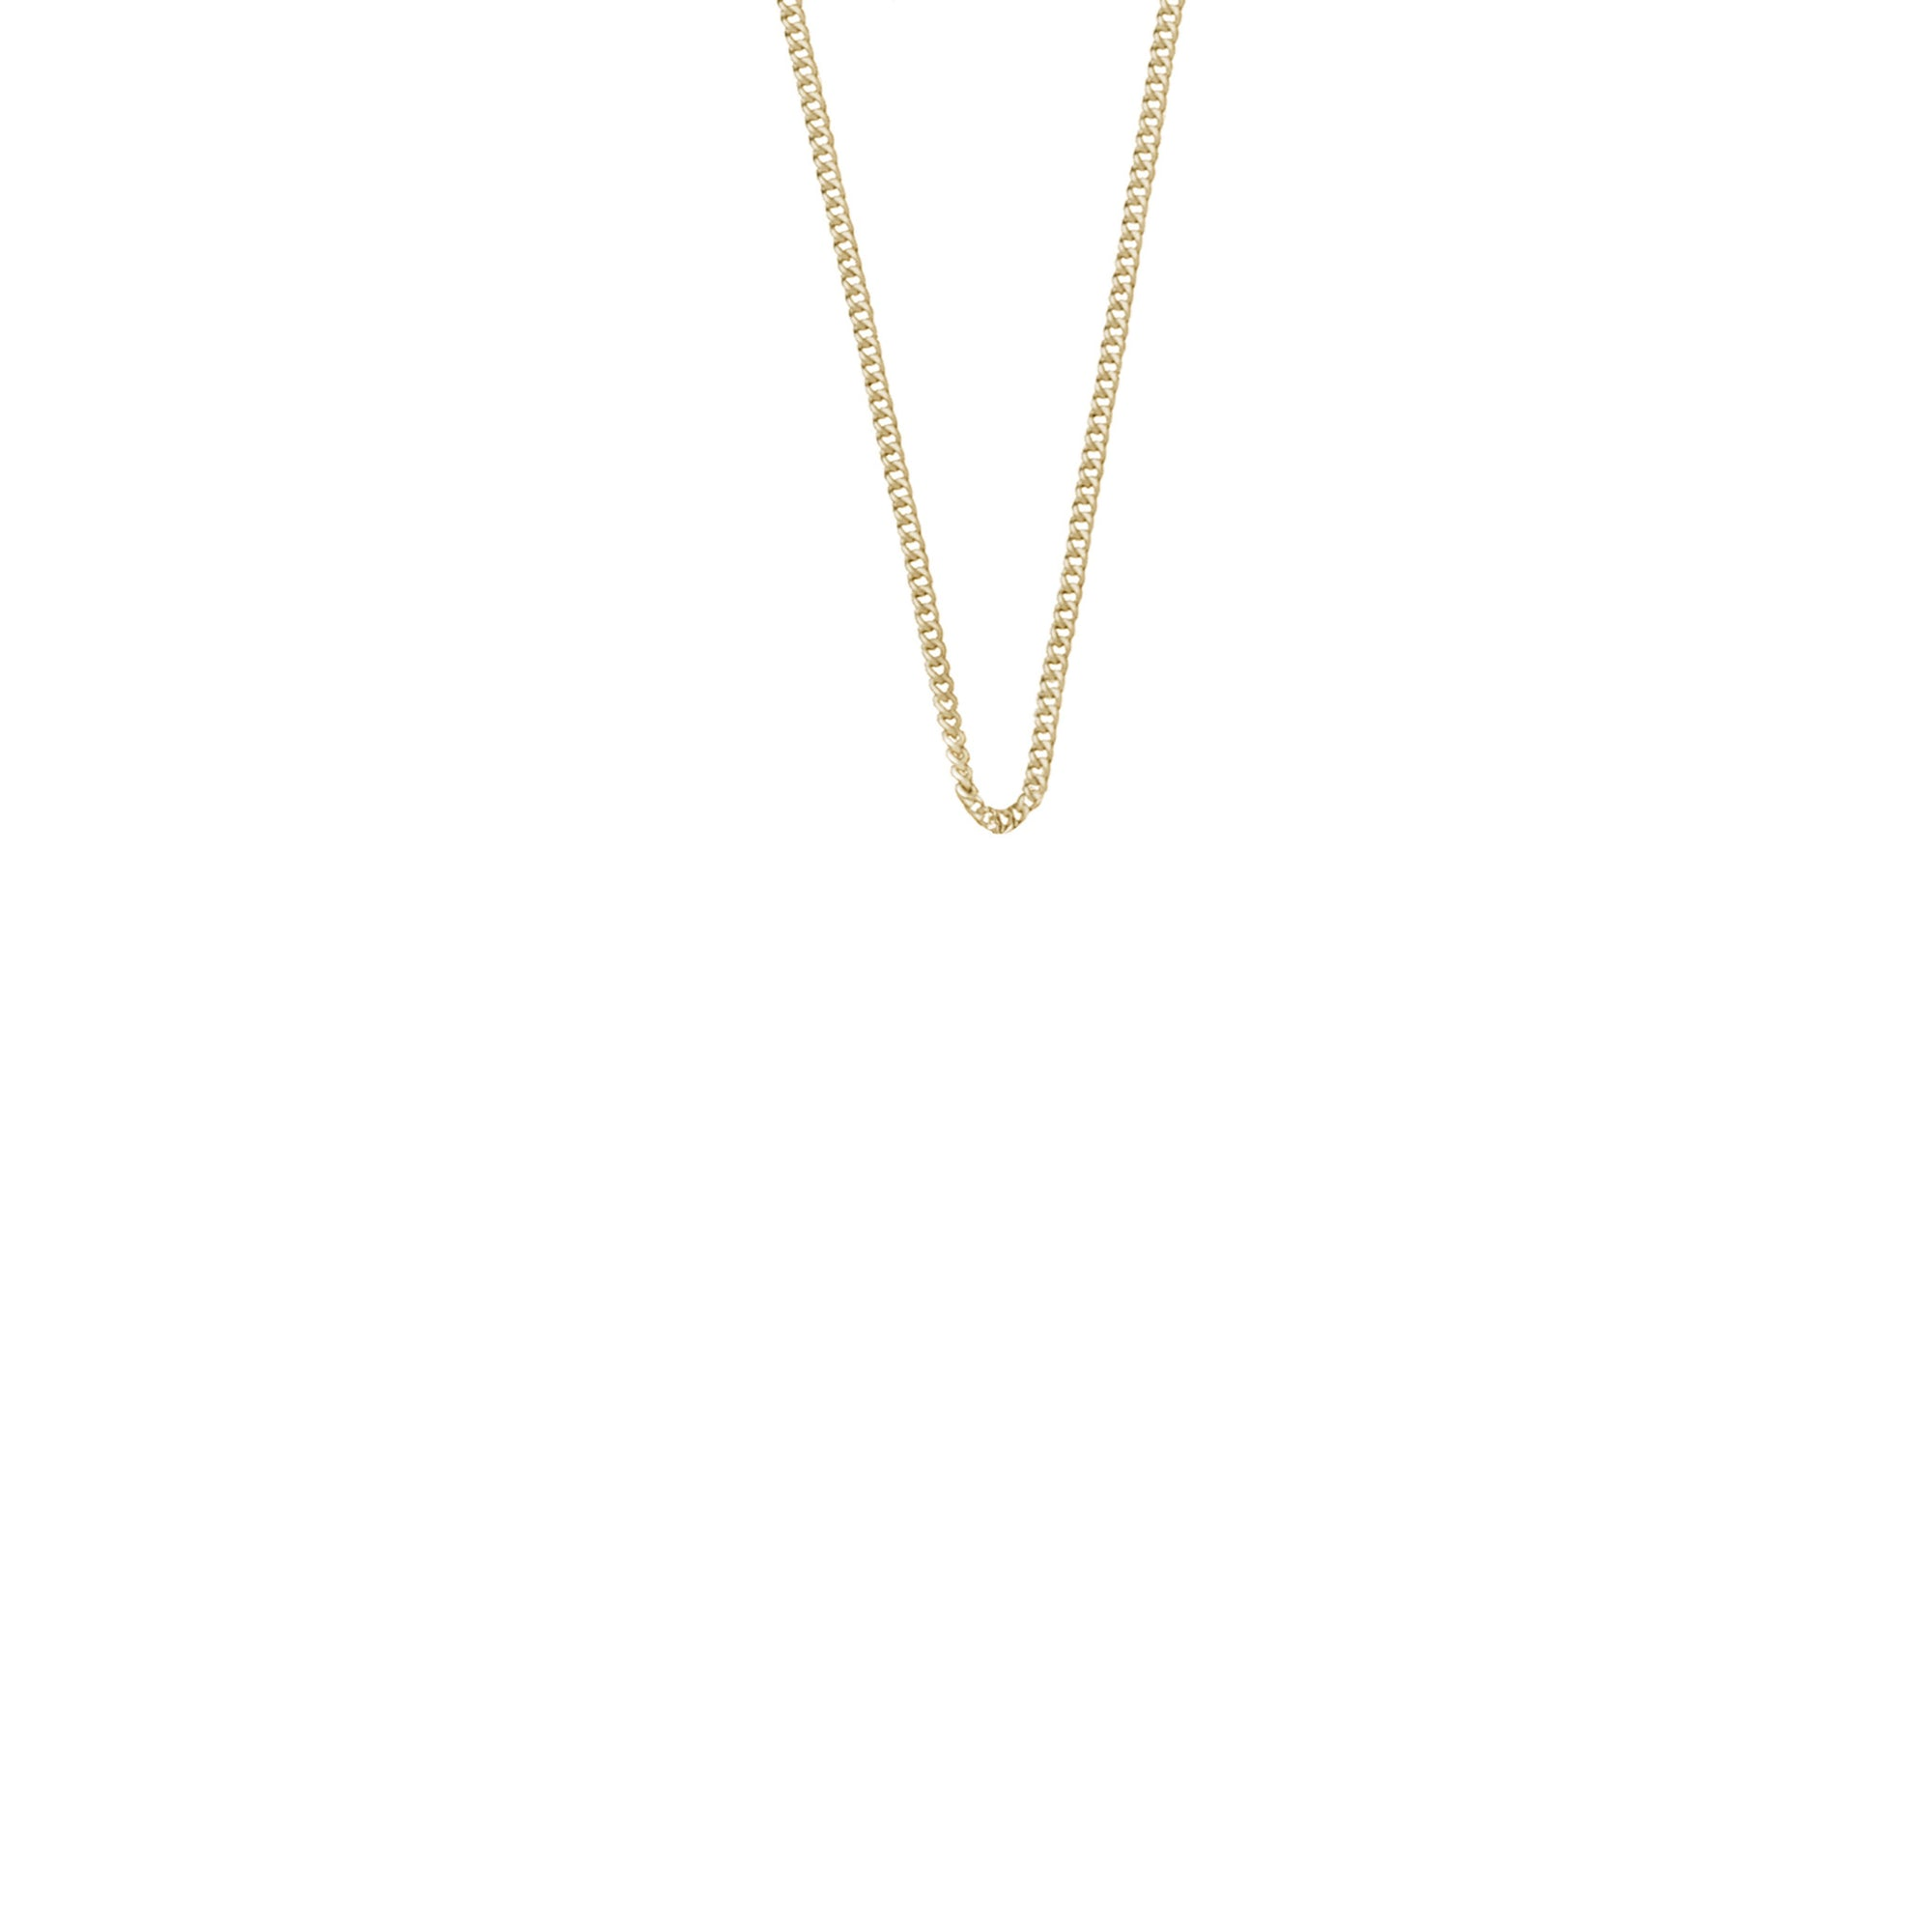 SIMPLE FINE CHAIN - To Add Charms onto (Gold)